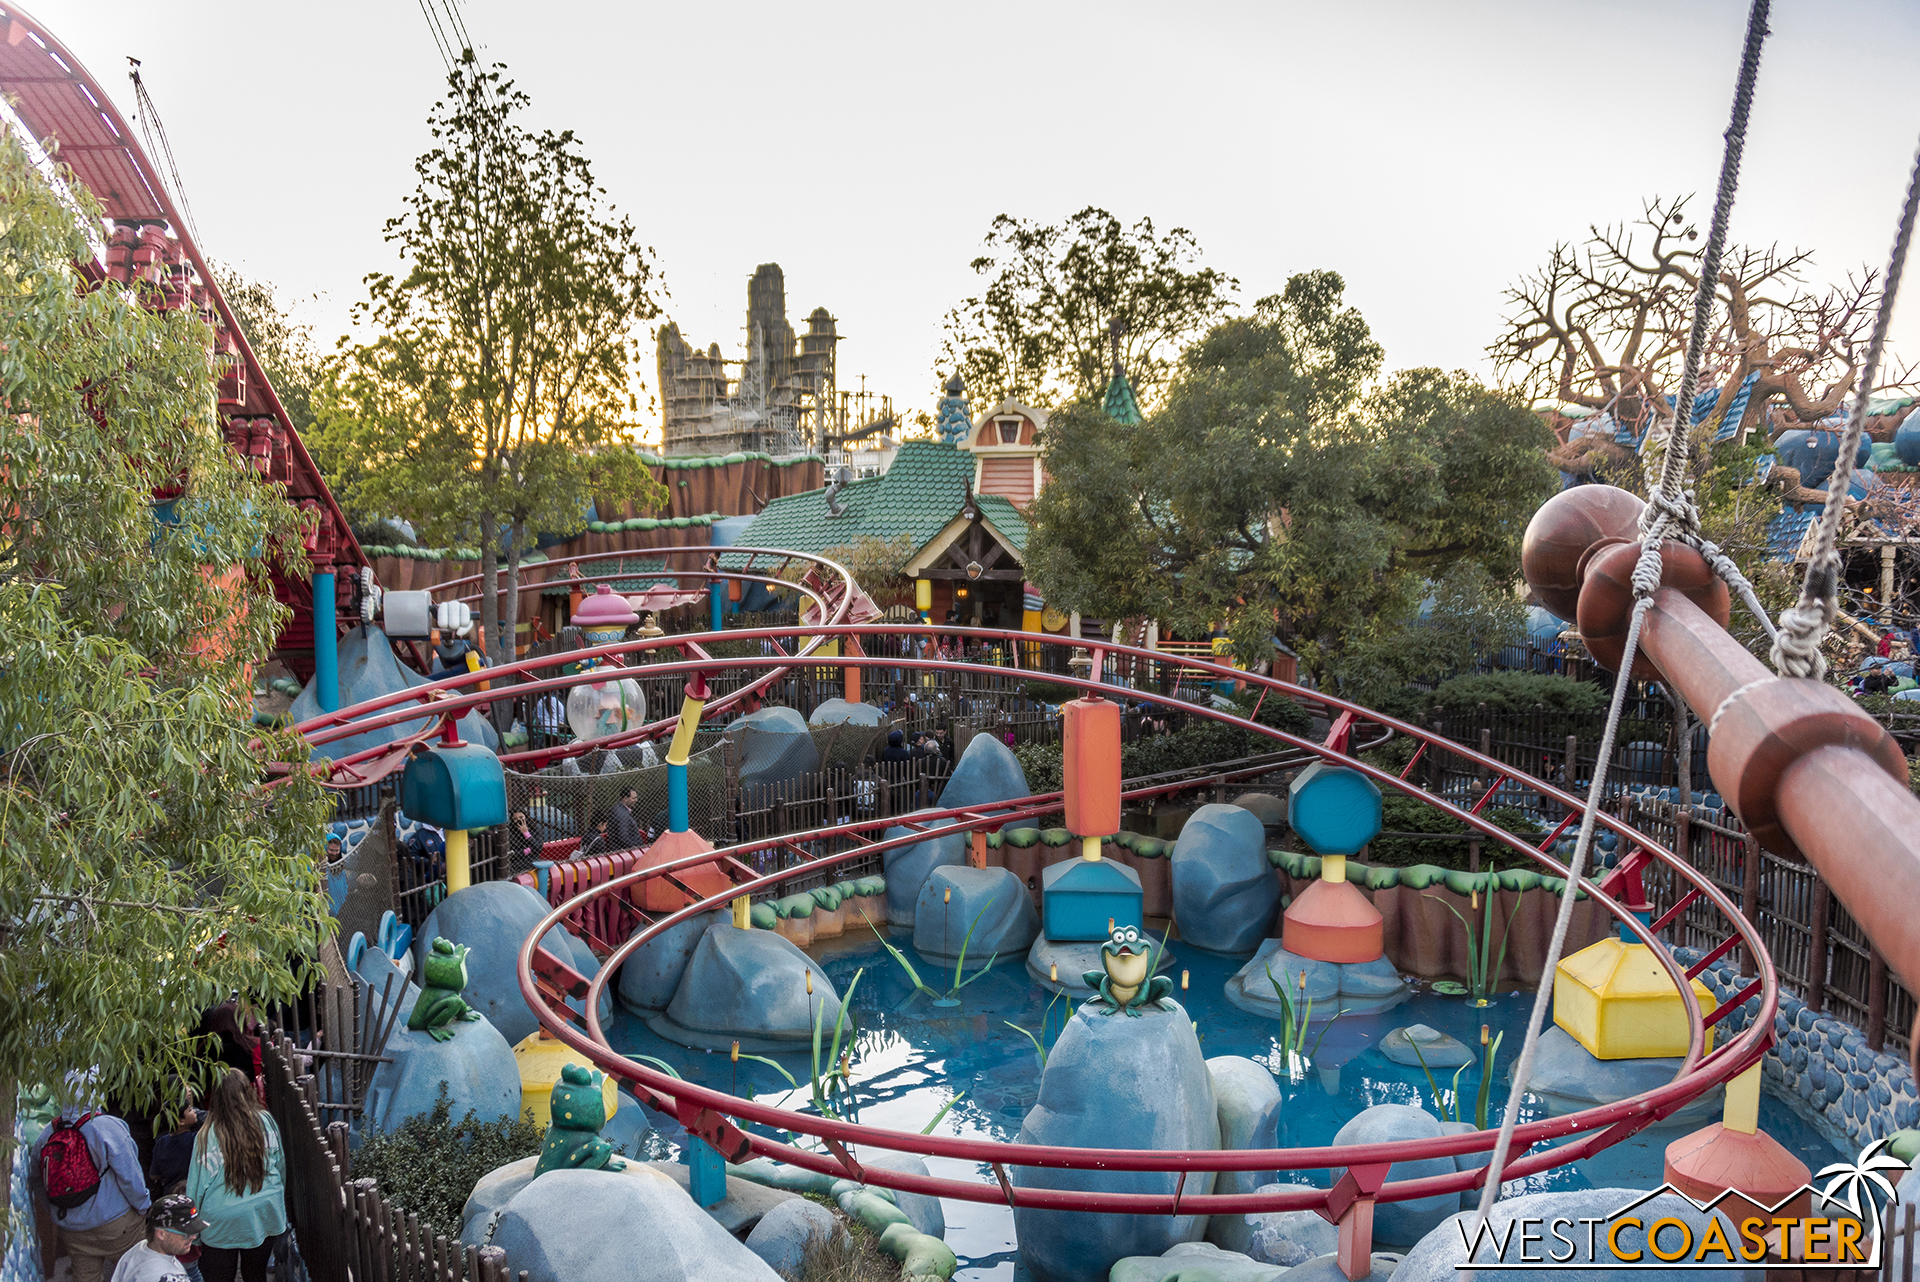 This is the biggest sightline issue I can see. Rock spires blend into the background of the Rivers of America and Frontierland, which are already rustic.